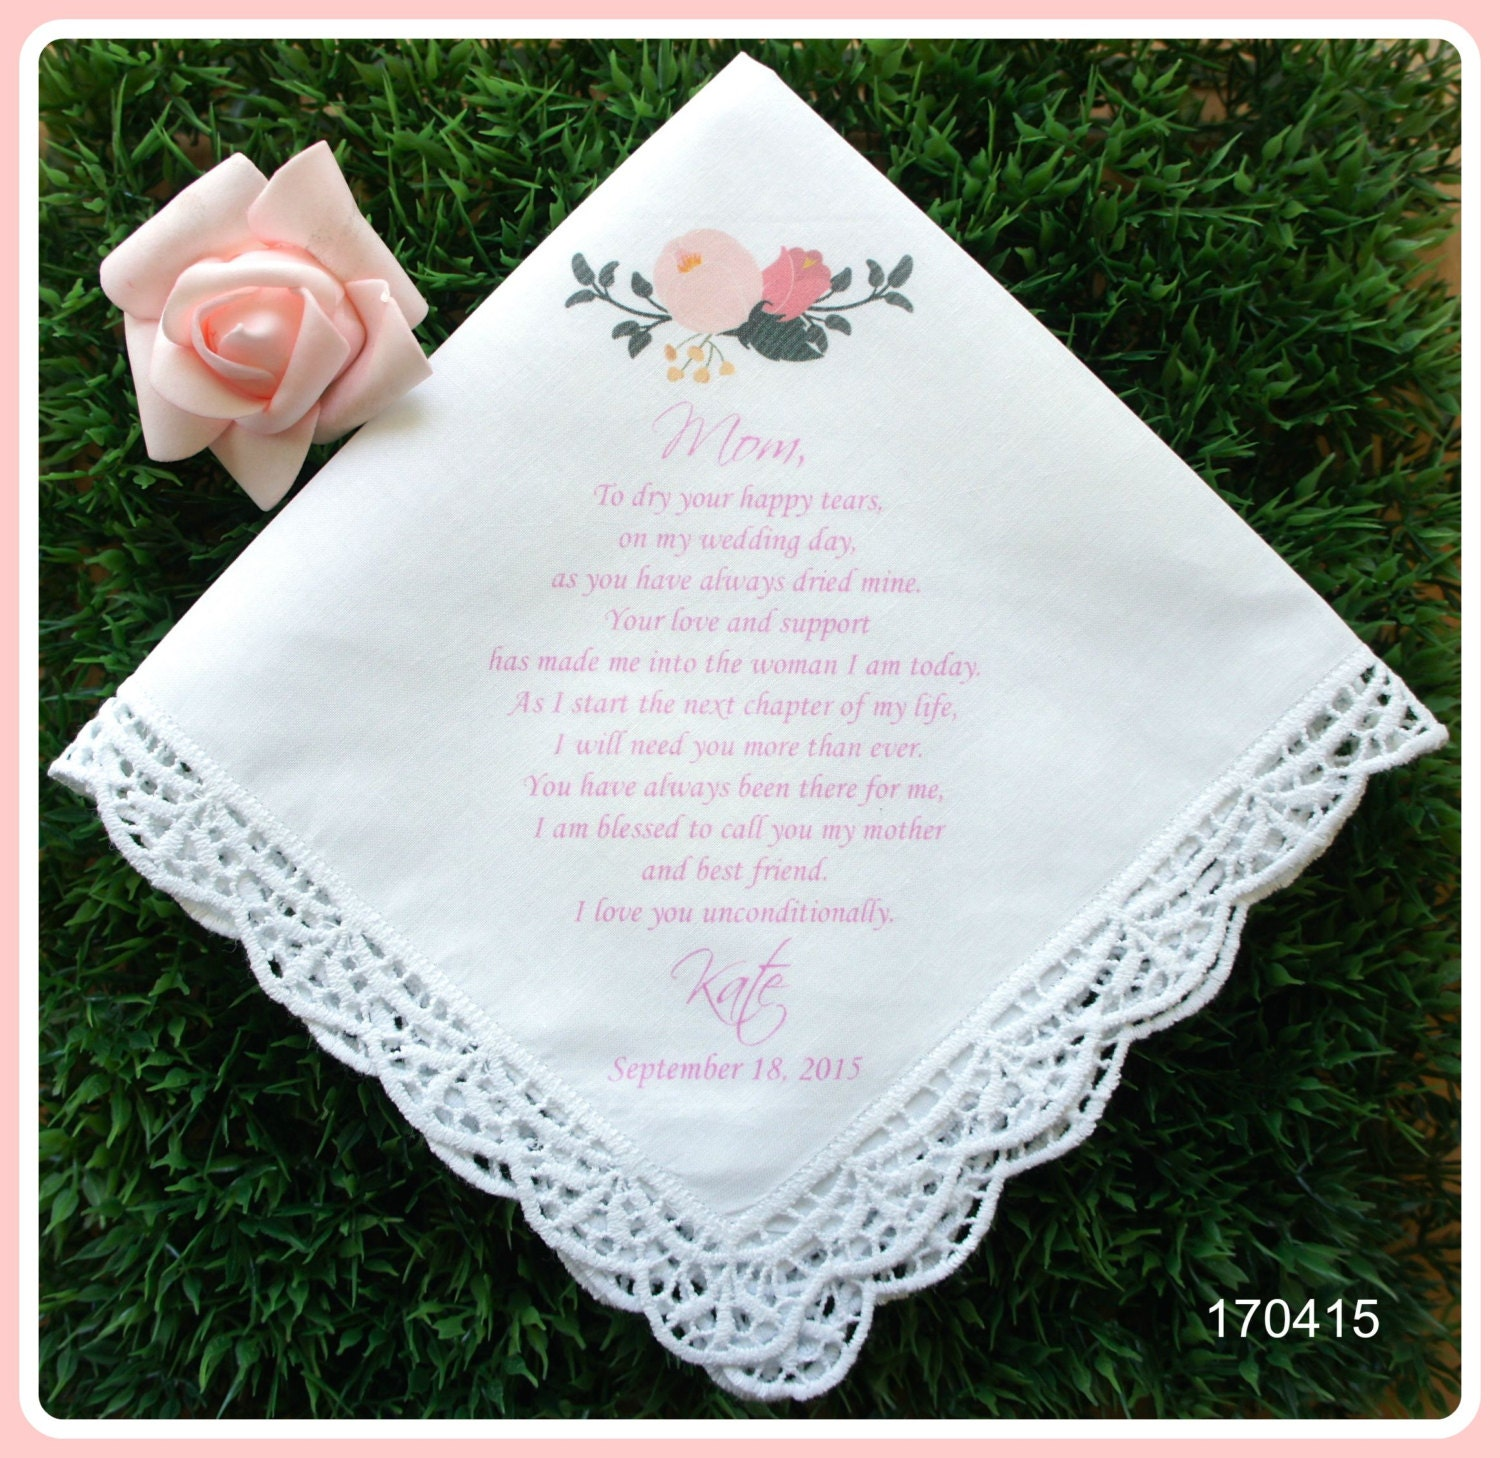 Wedding Gift For Bride From Mother: Mother Of The Bride Gifts-Wedding Handkerchief-PRINTED